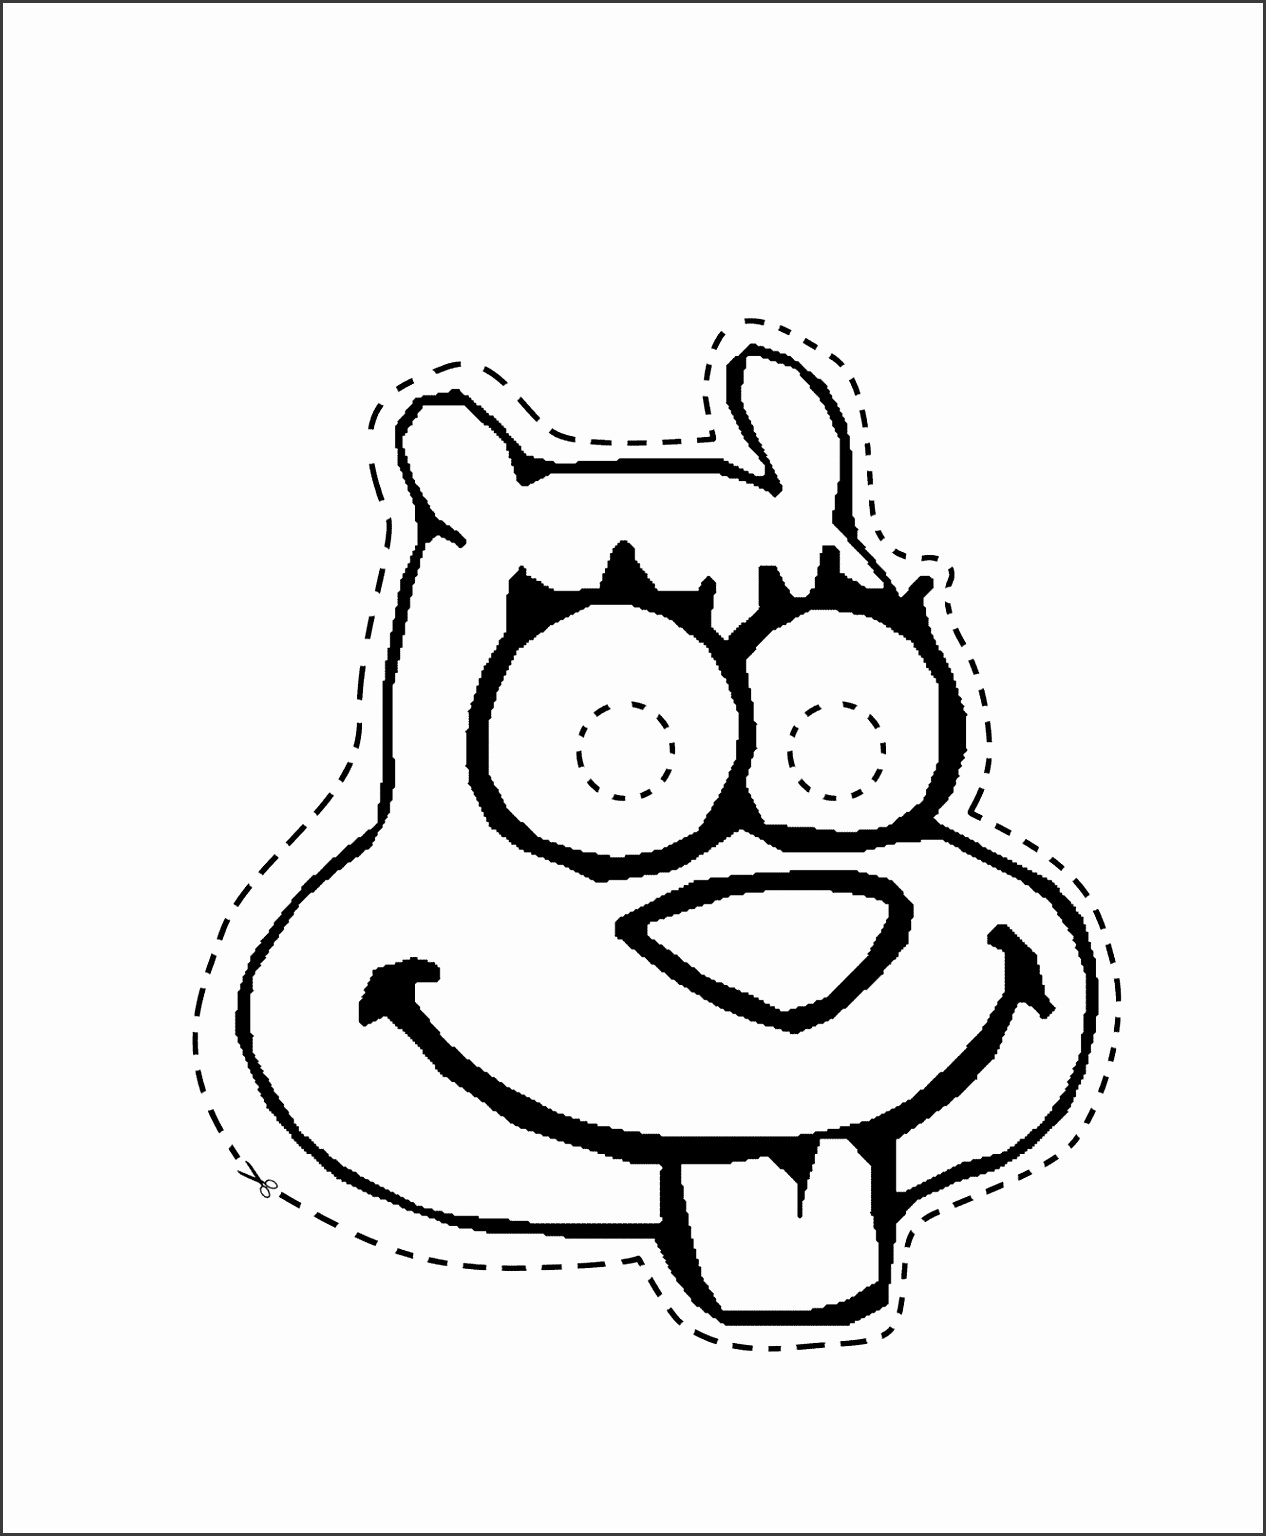 squirrelmask Colouring Pages